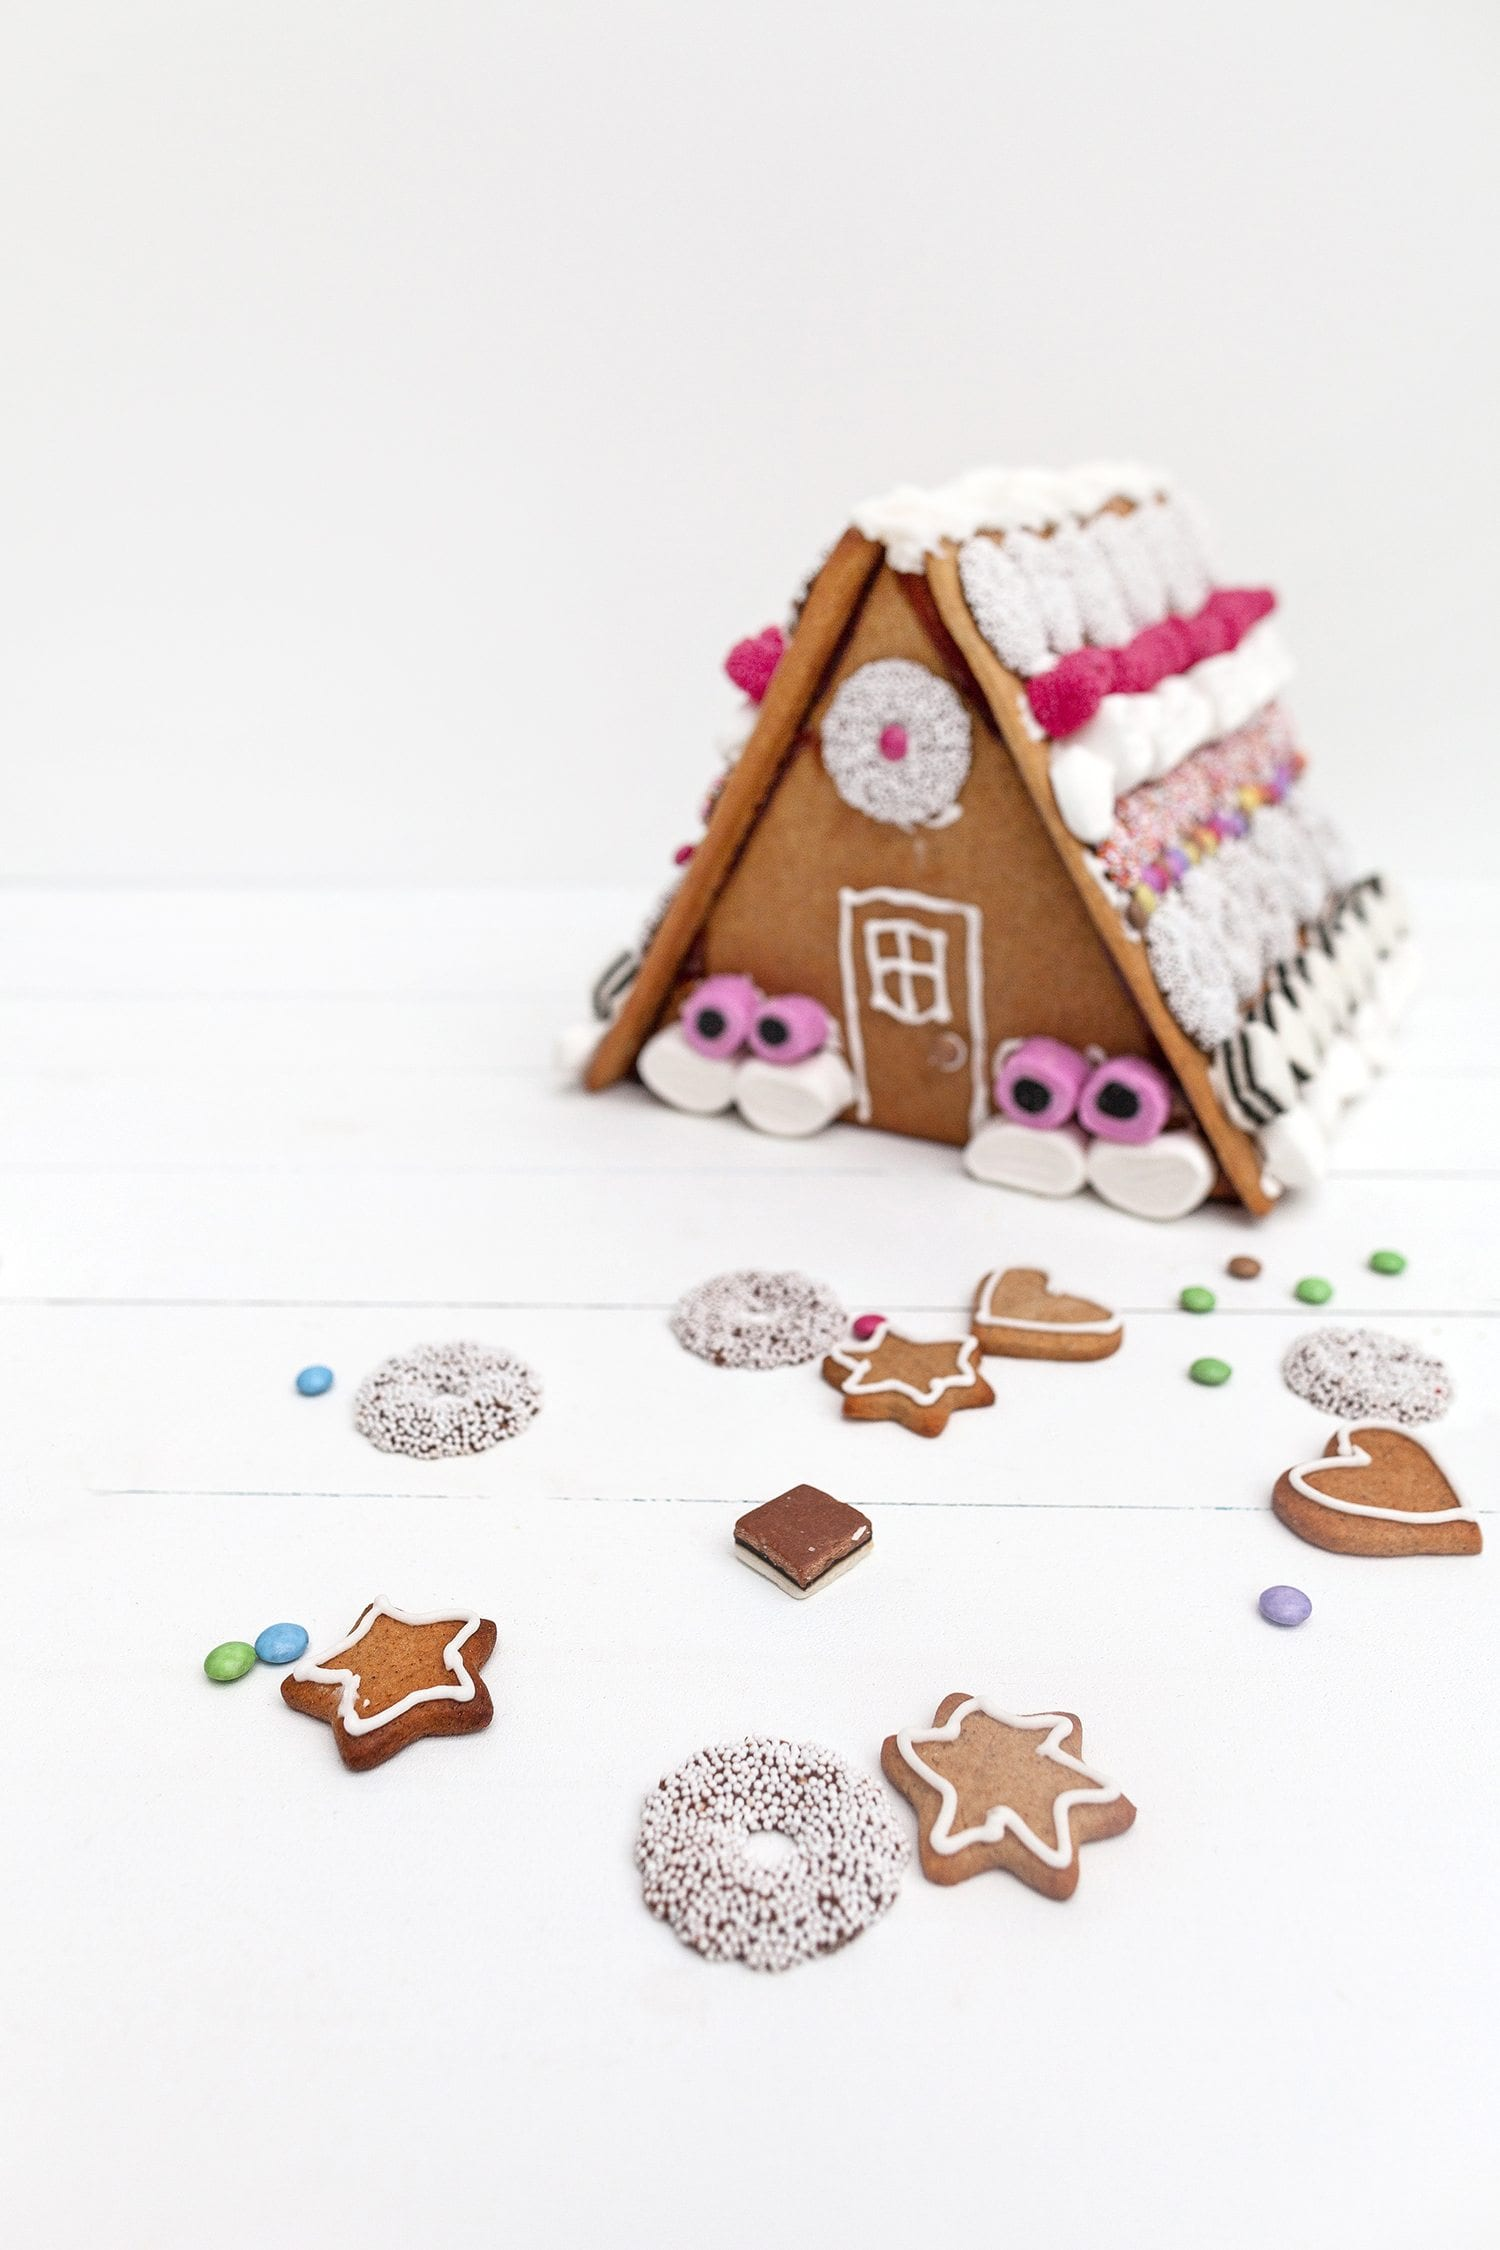 homemade scandinavian gingerbread house food cookies baking christmas traditions norwegian picturelyspoken cookies